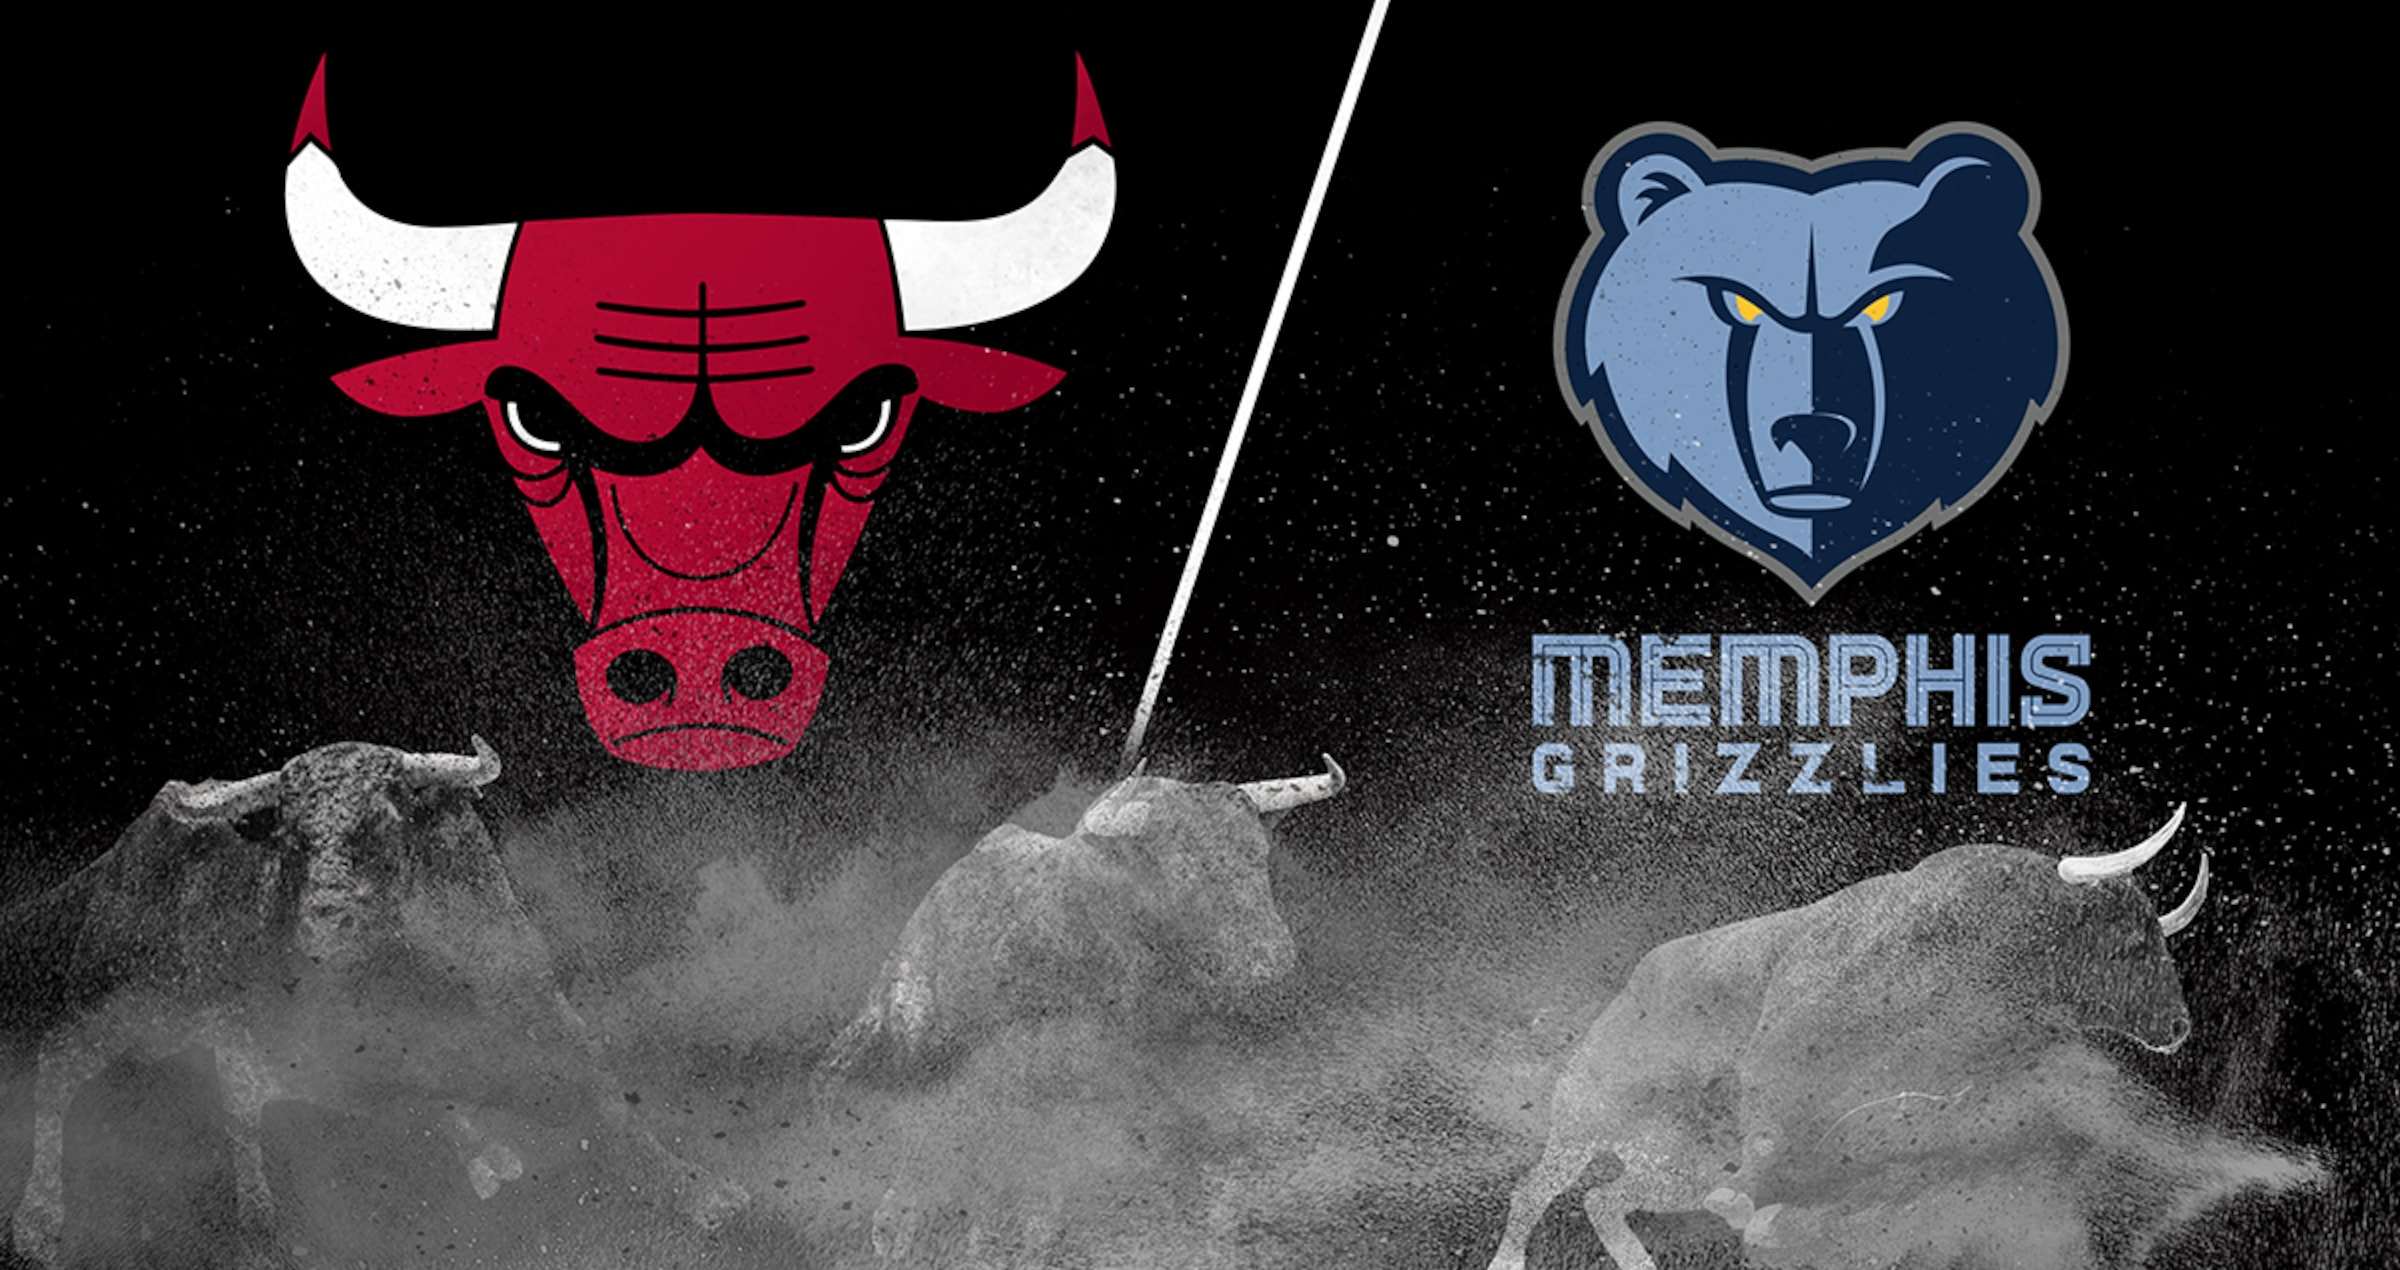 Bulls vs Grizzlies graphic